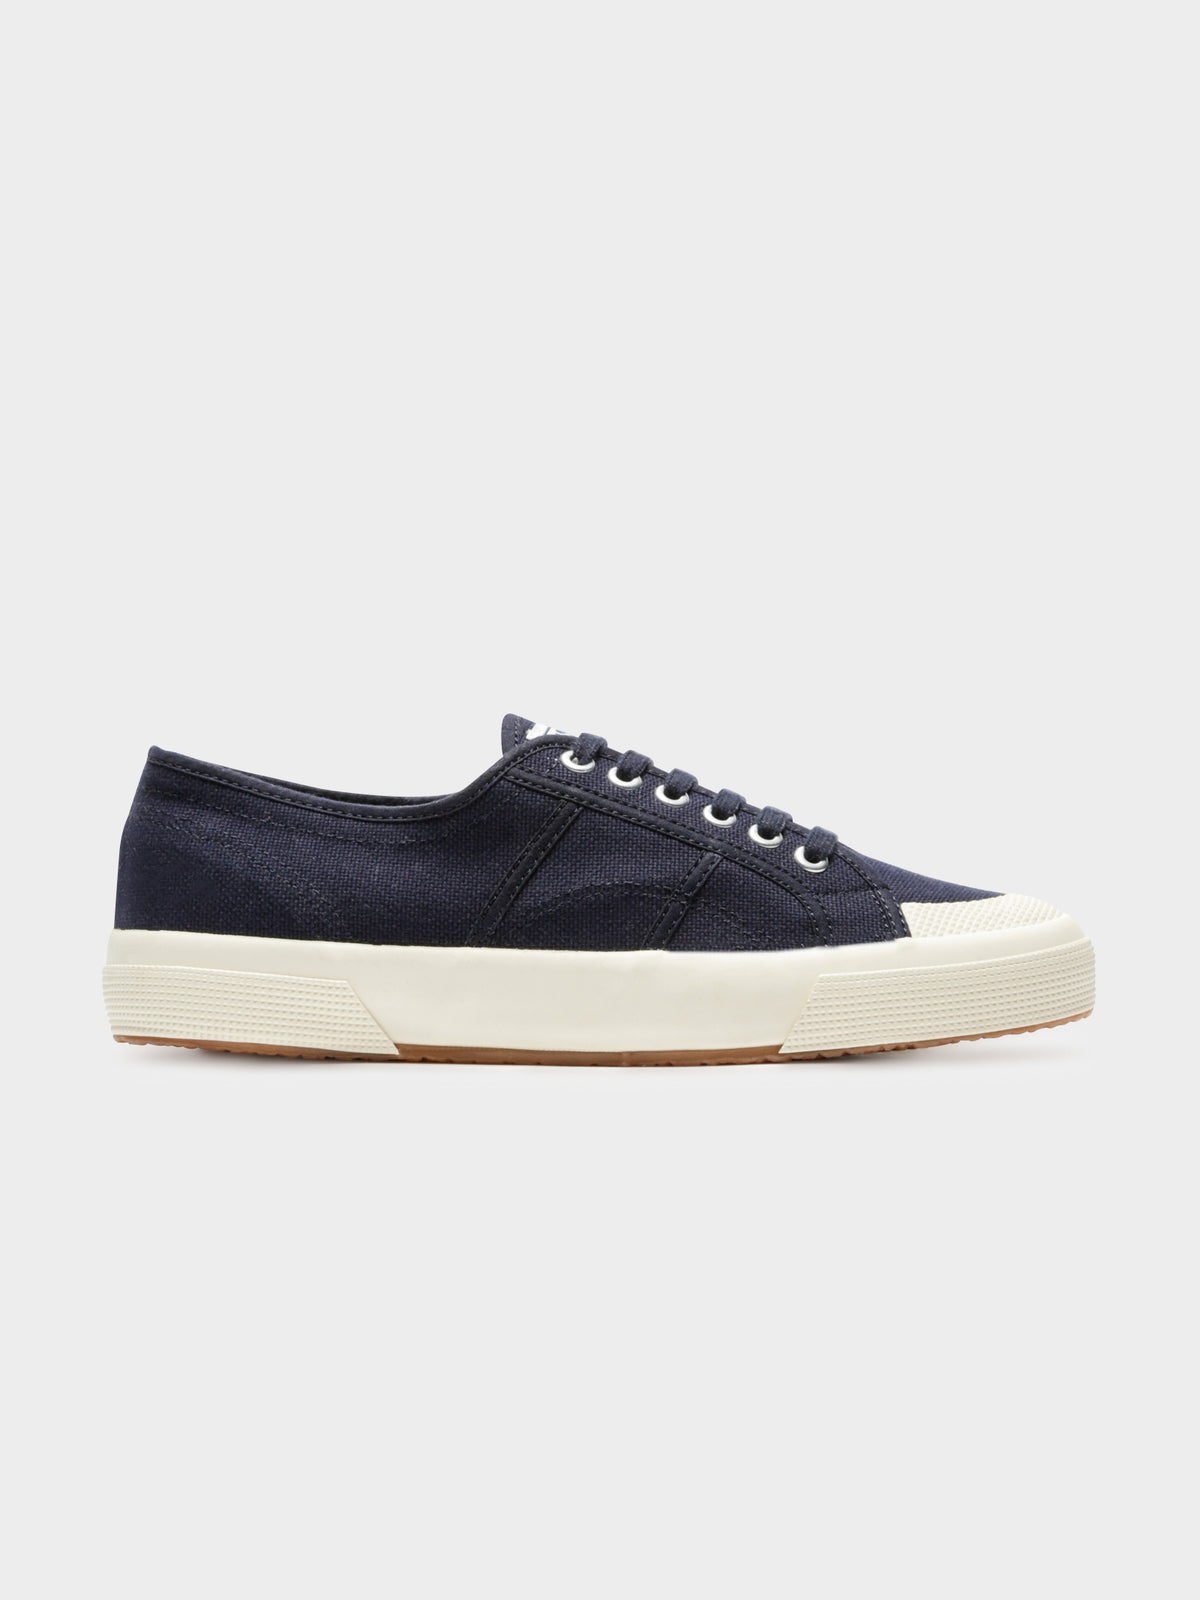 2390 Cotu Sneakers in Navy